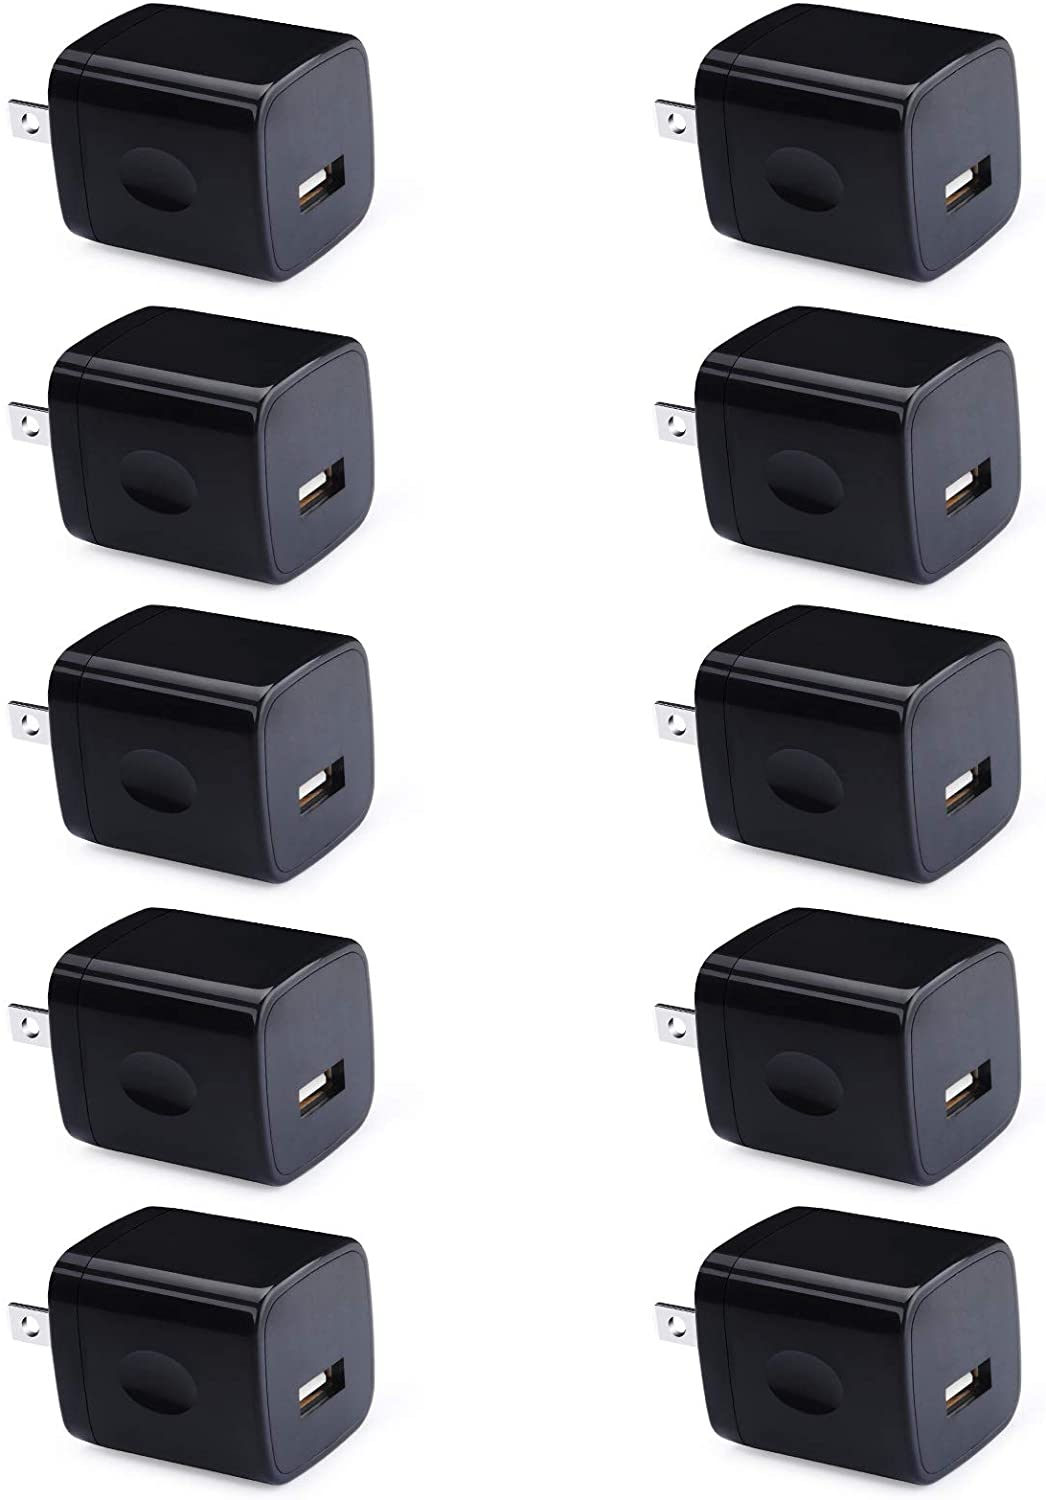 Charger Adapter, UorMe 1A 5V 10 Pack Single Port Wall Charger Power Adapter Cube Block Box Compatible iPhone SE (2020) 11 Xs XR X 8 7 6S 6, Samsung Galaxy A20 A71 A51 A31 M51 S10e S9 S8, LG V70 V35 G6